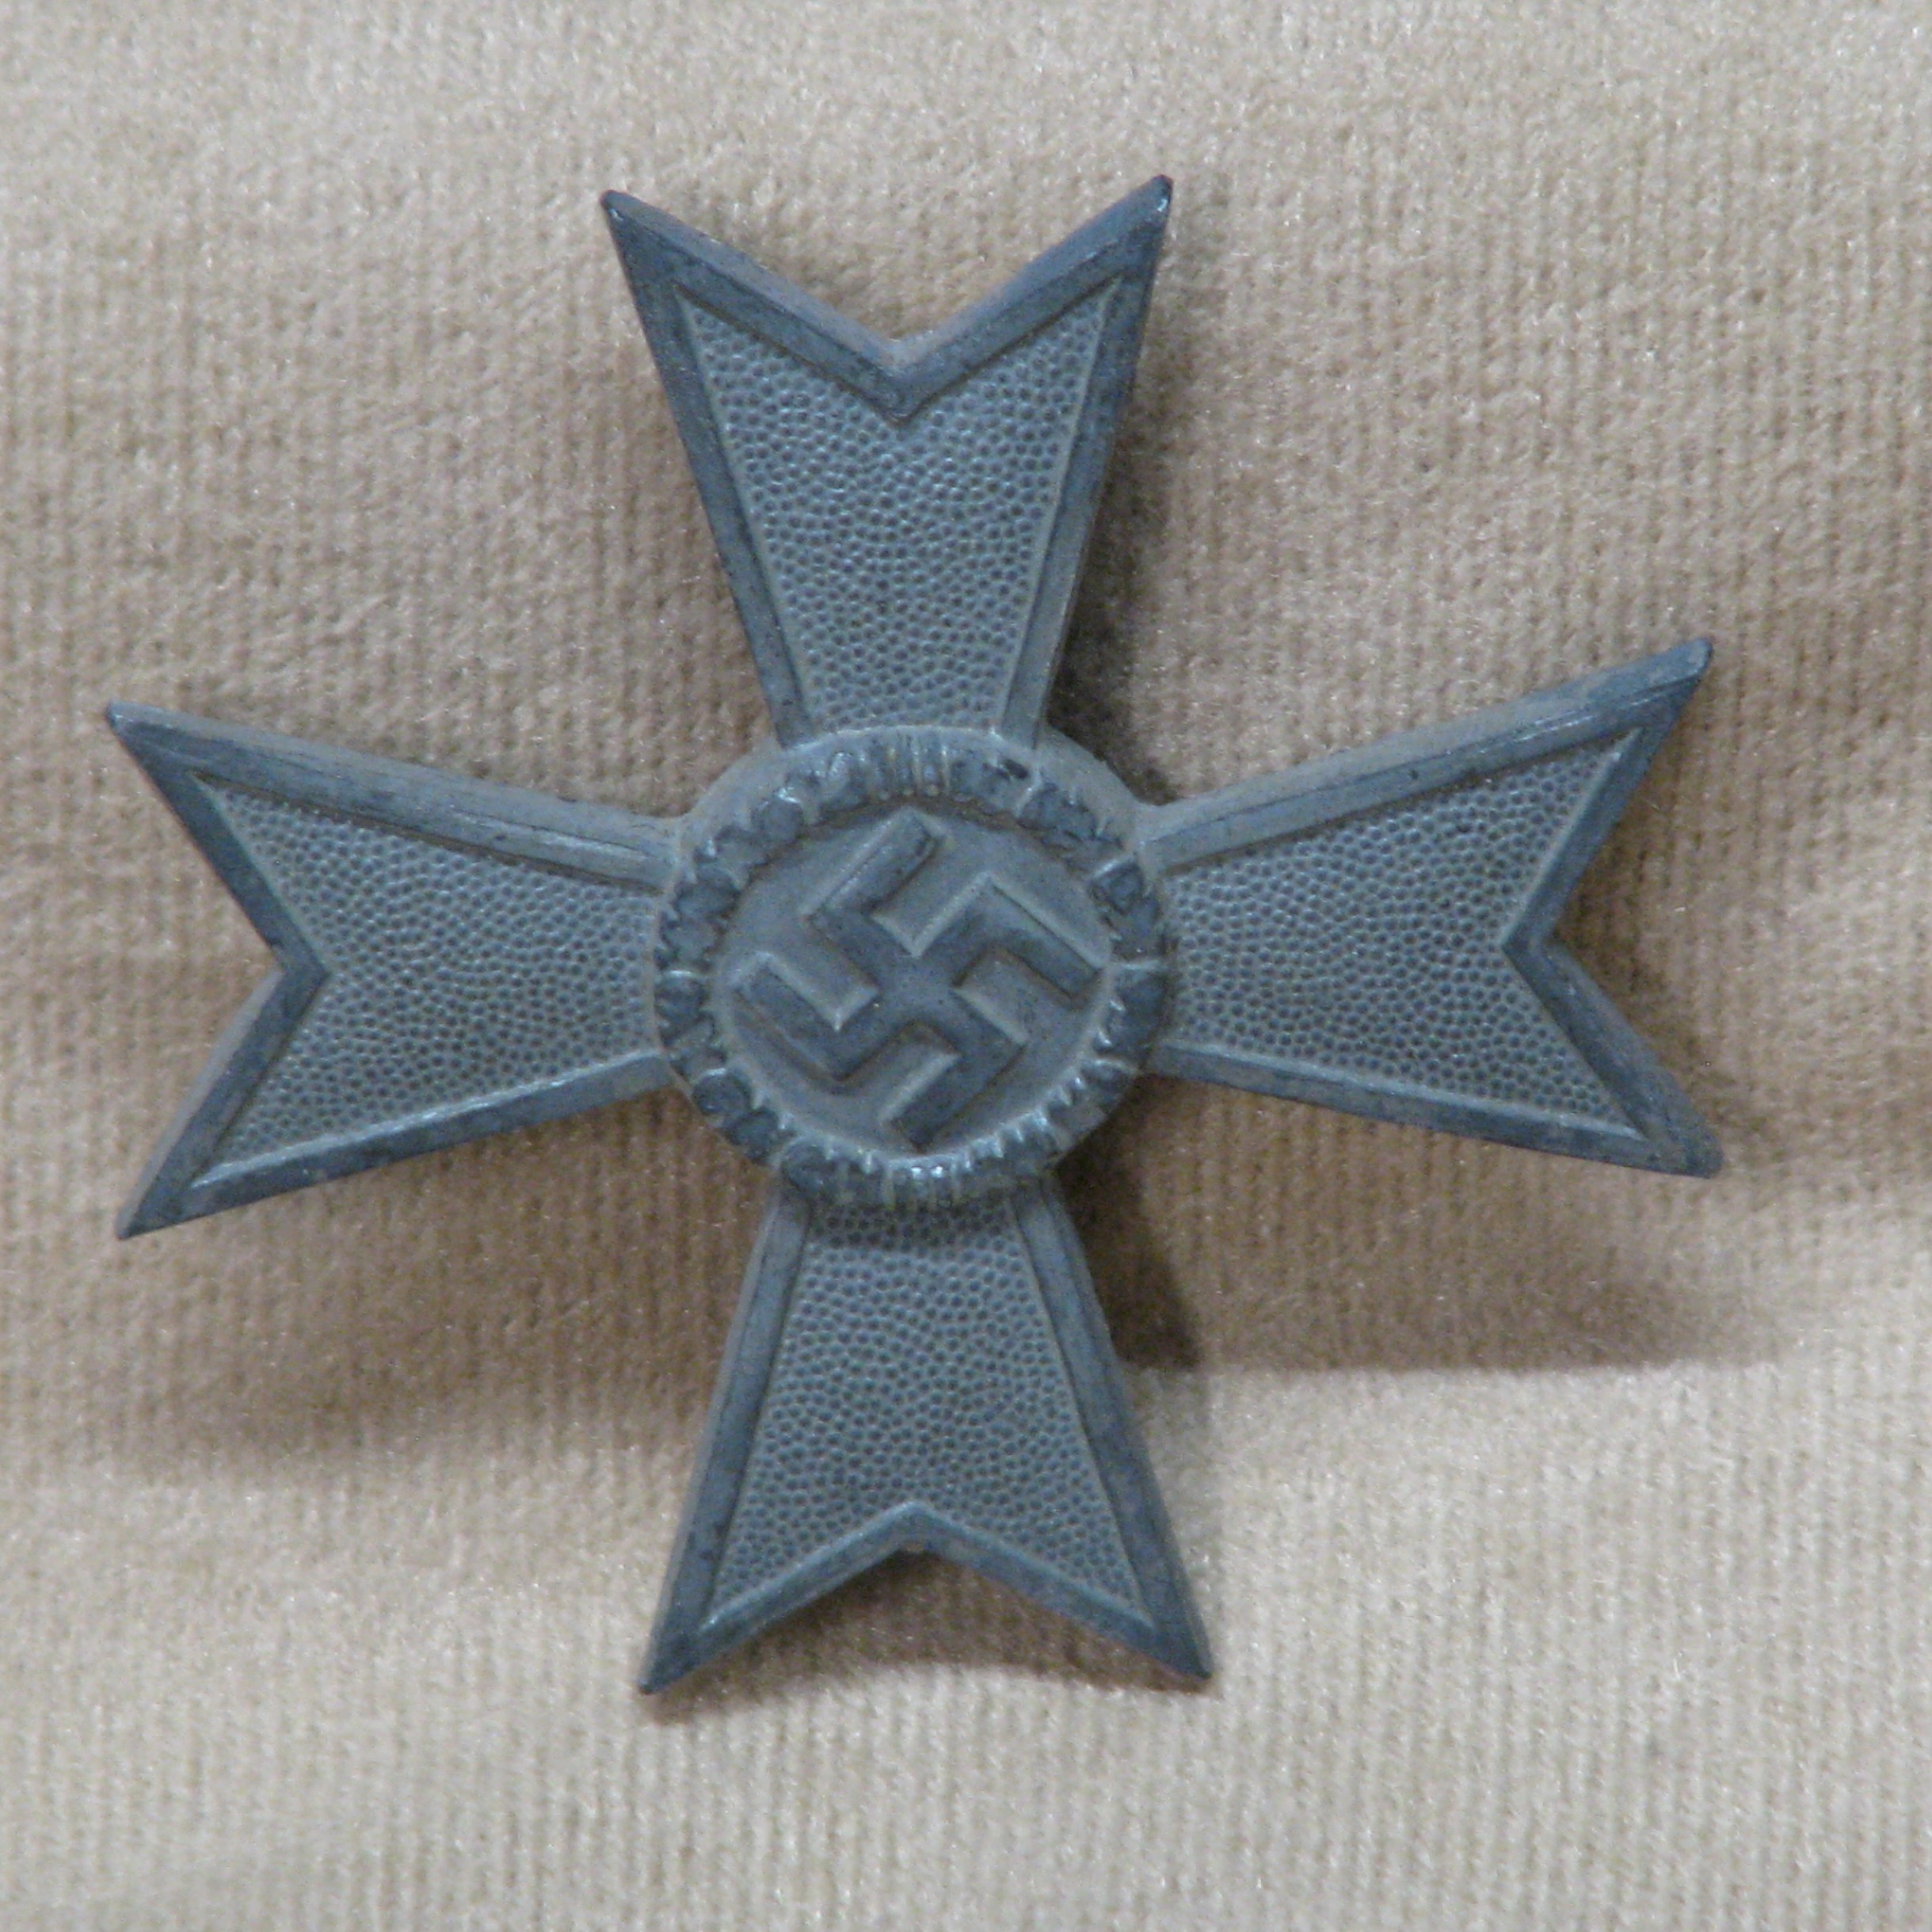 WWII German War Merit Cross Medal 1st Class Mint Un-Issued Condition Hallmarked on Back 3 Pin Back #18-167